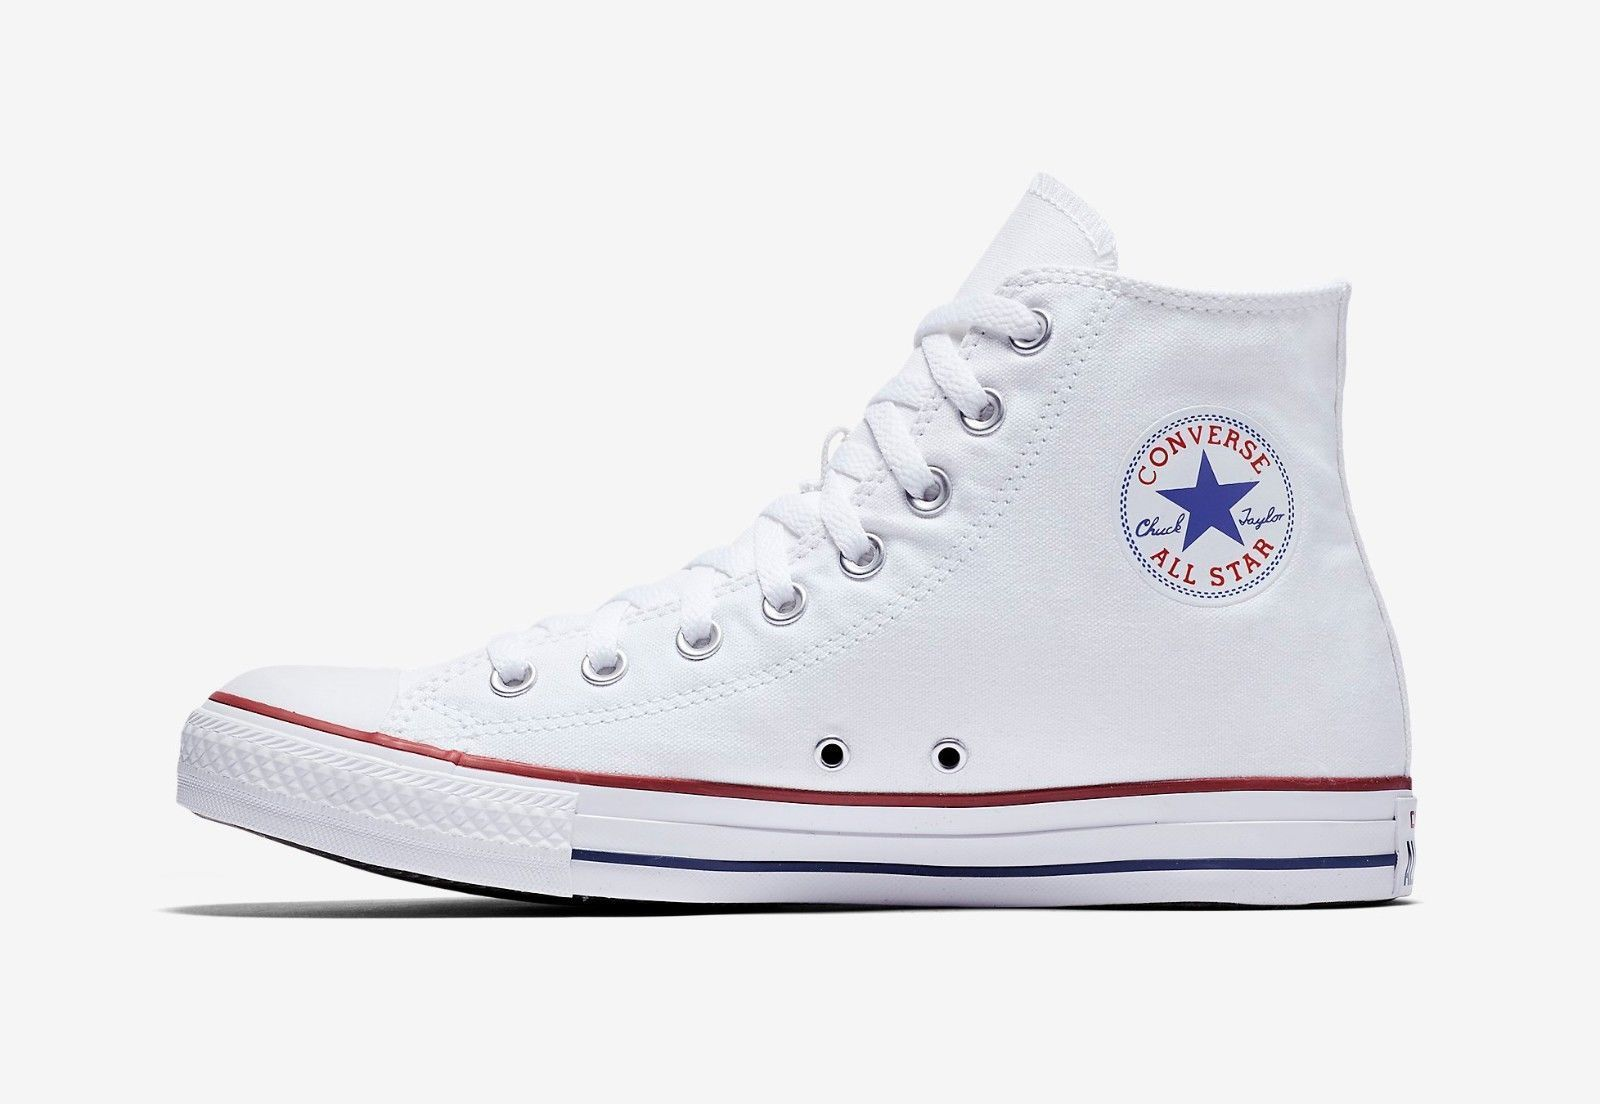 92358a6719a4 Converse Chuck Taylor All Star High Top Canvas Women Shoes M7650 - Optical  White